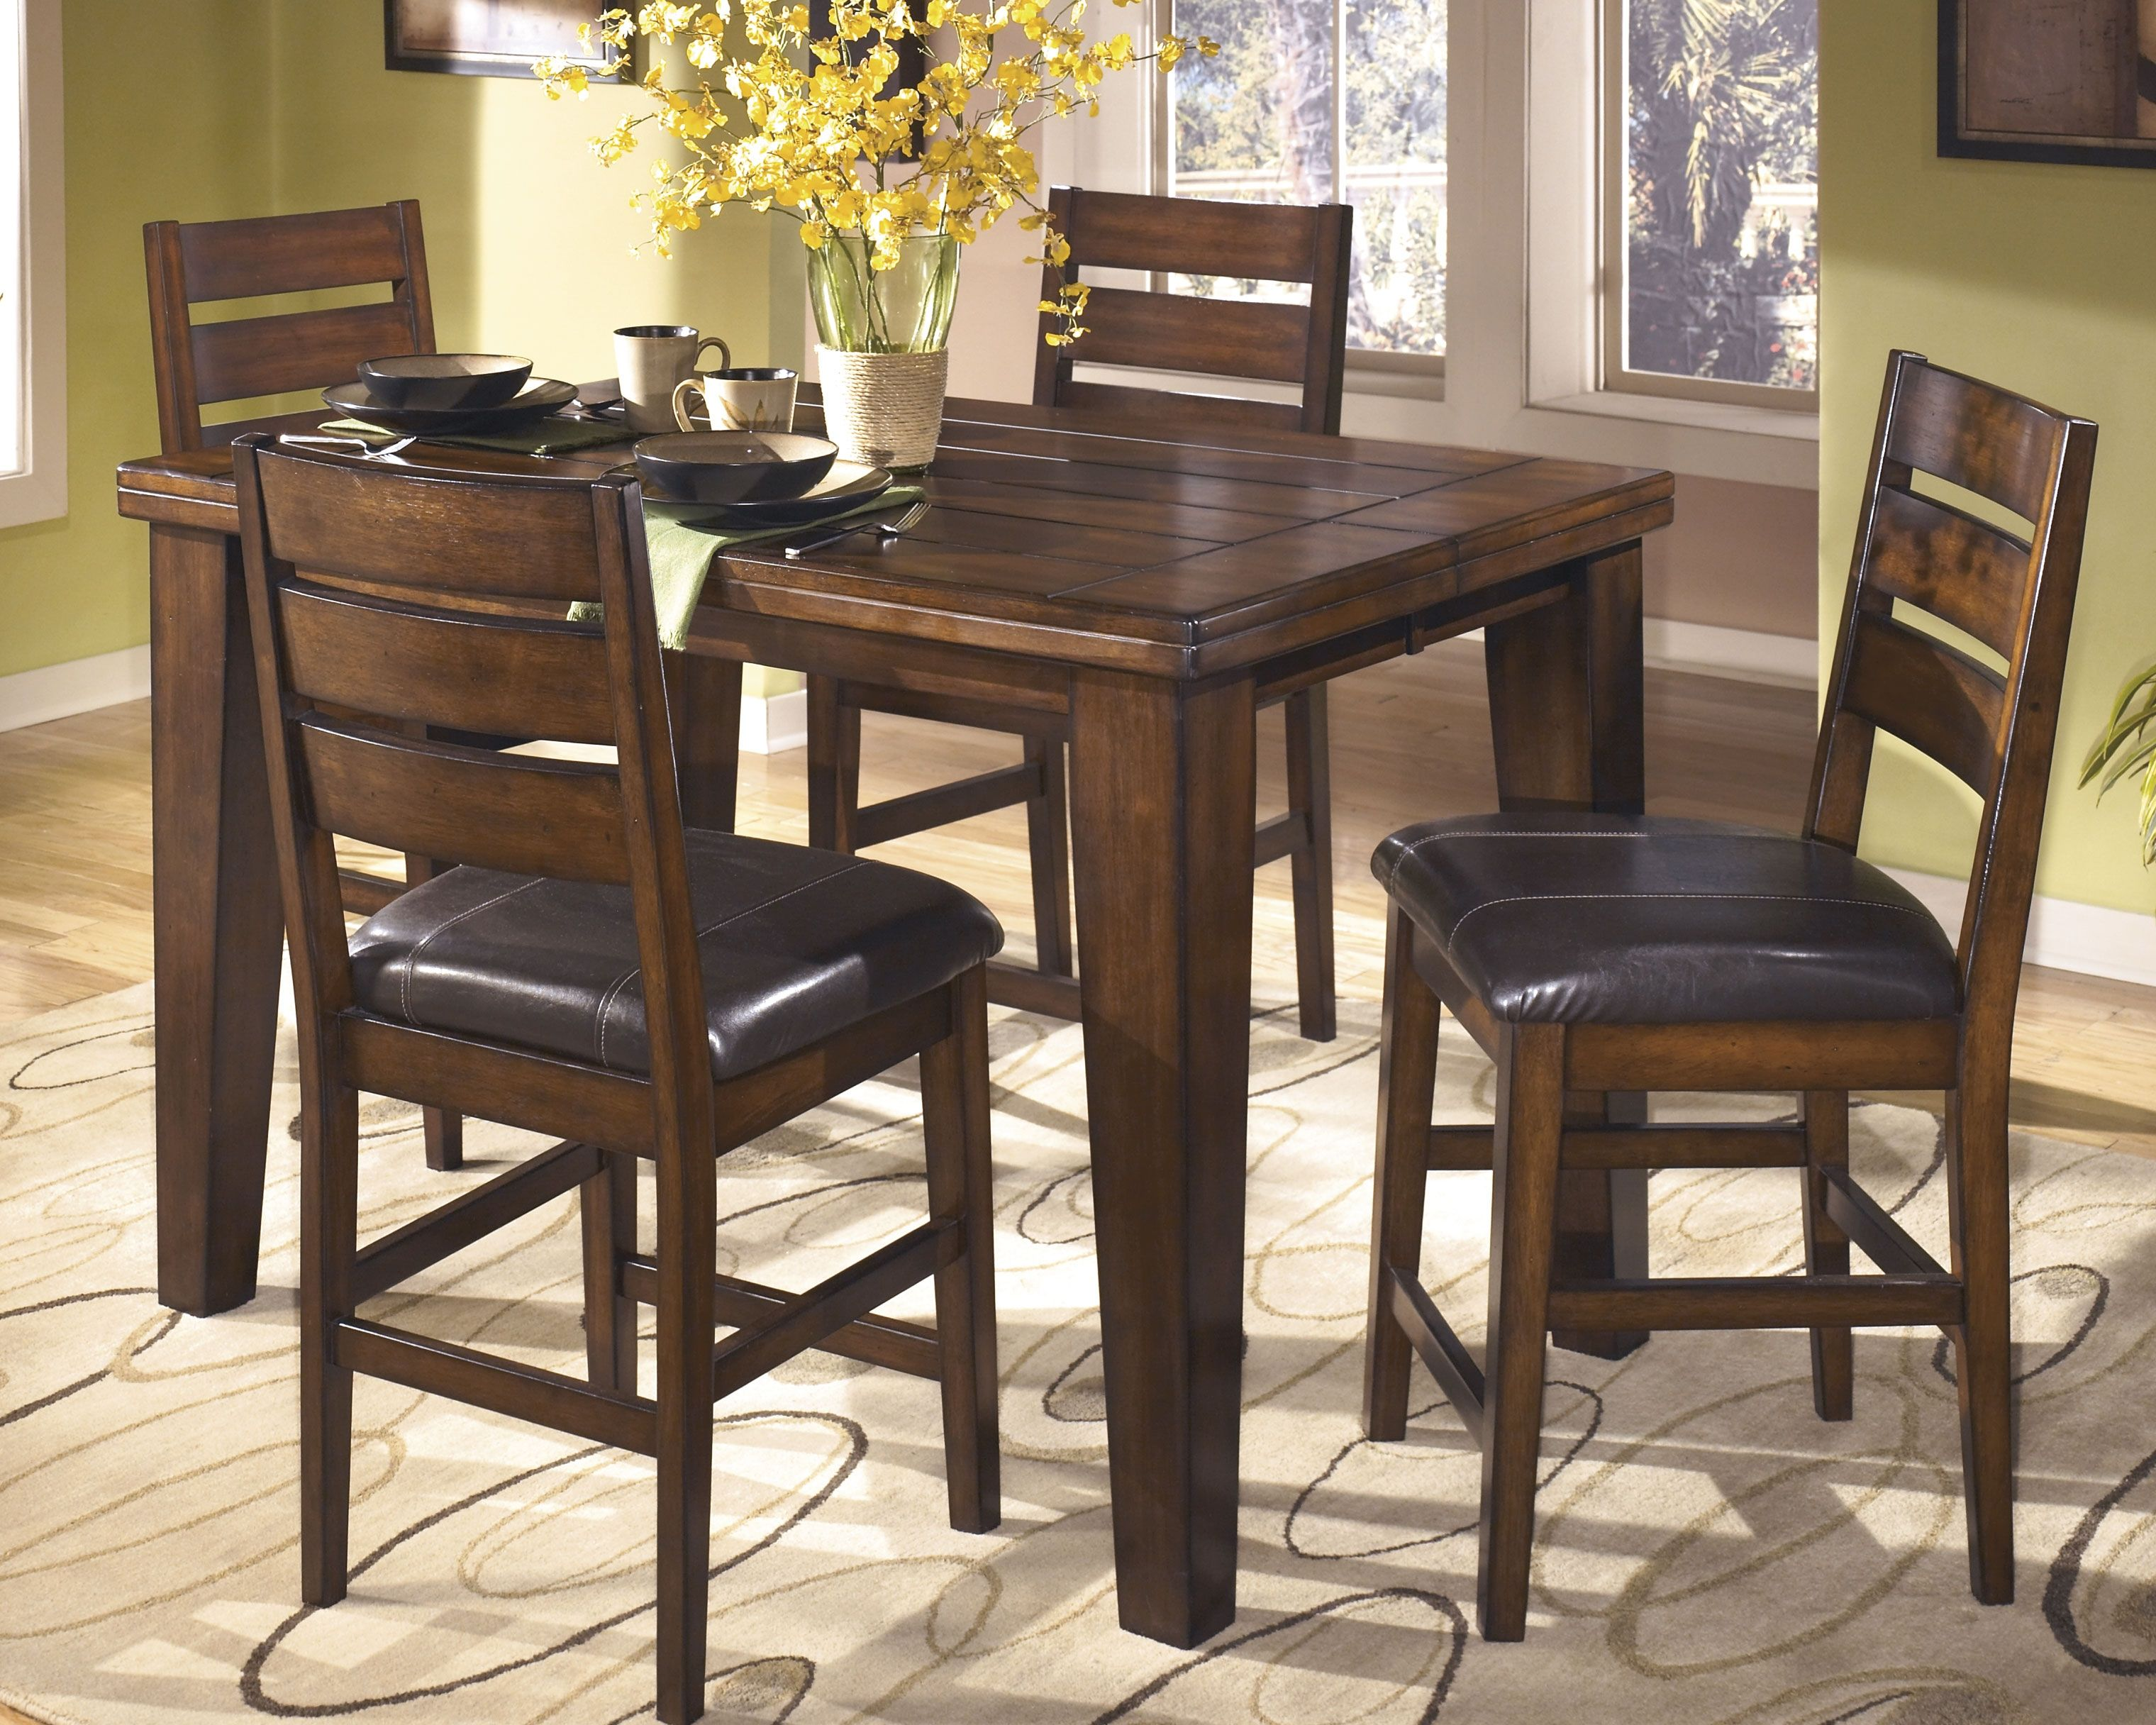 Larchmont Counter Height Dining Room Extension Table Burnished